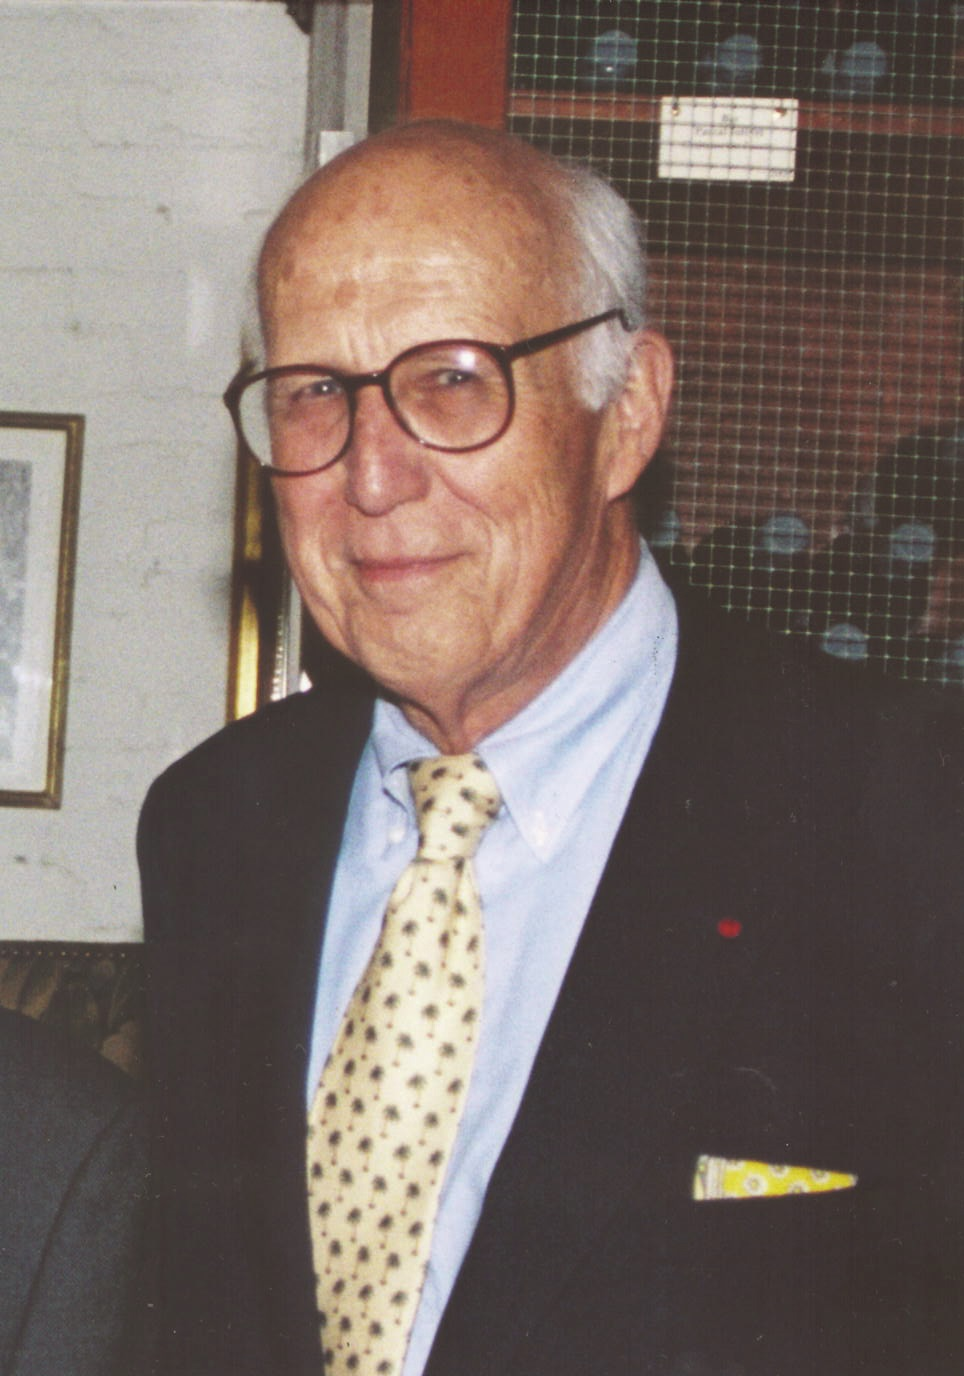 Whitney North Seymour, Jr. in 2008. Photo courtesy of the New York State Bar Association.